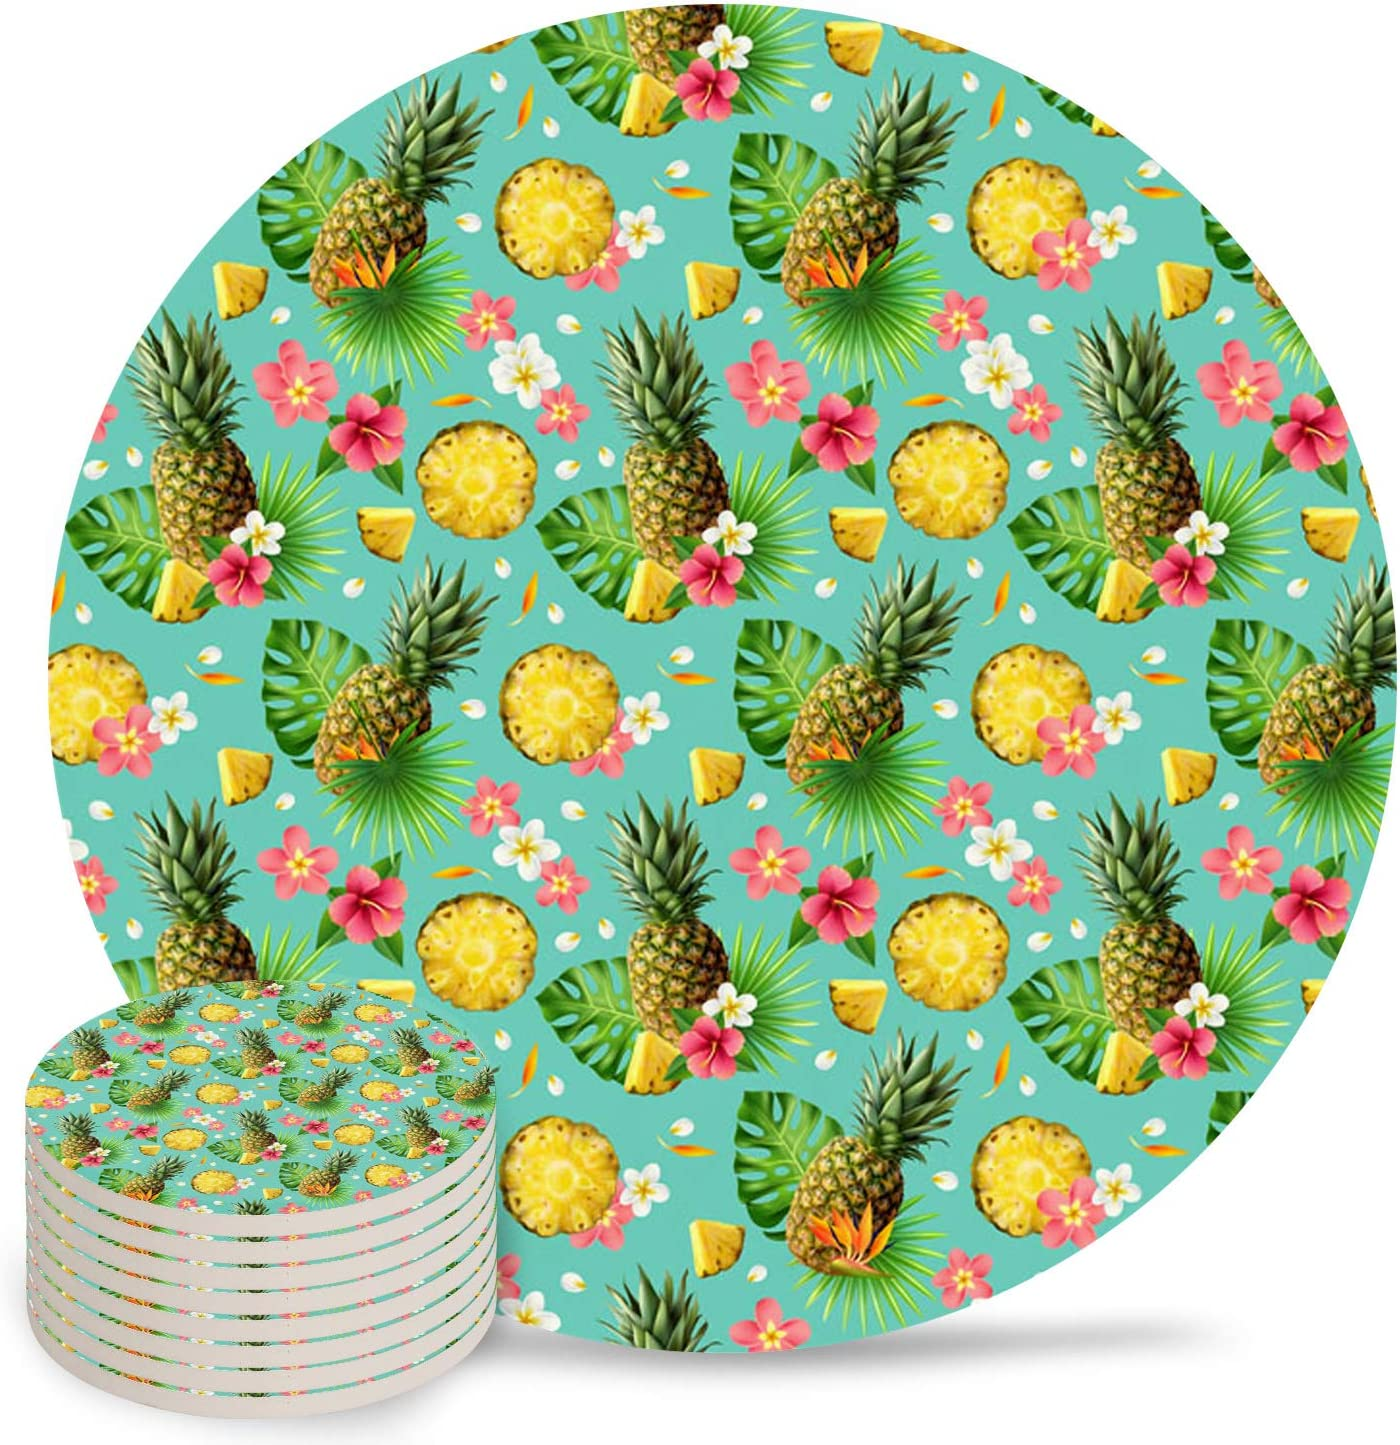 Tropical Plants 4 inch Ceramic Ranking TOP1 Coaster for Drink Wo National products